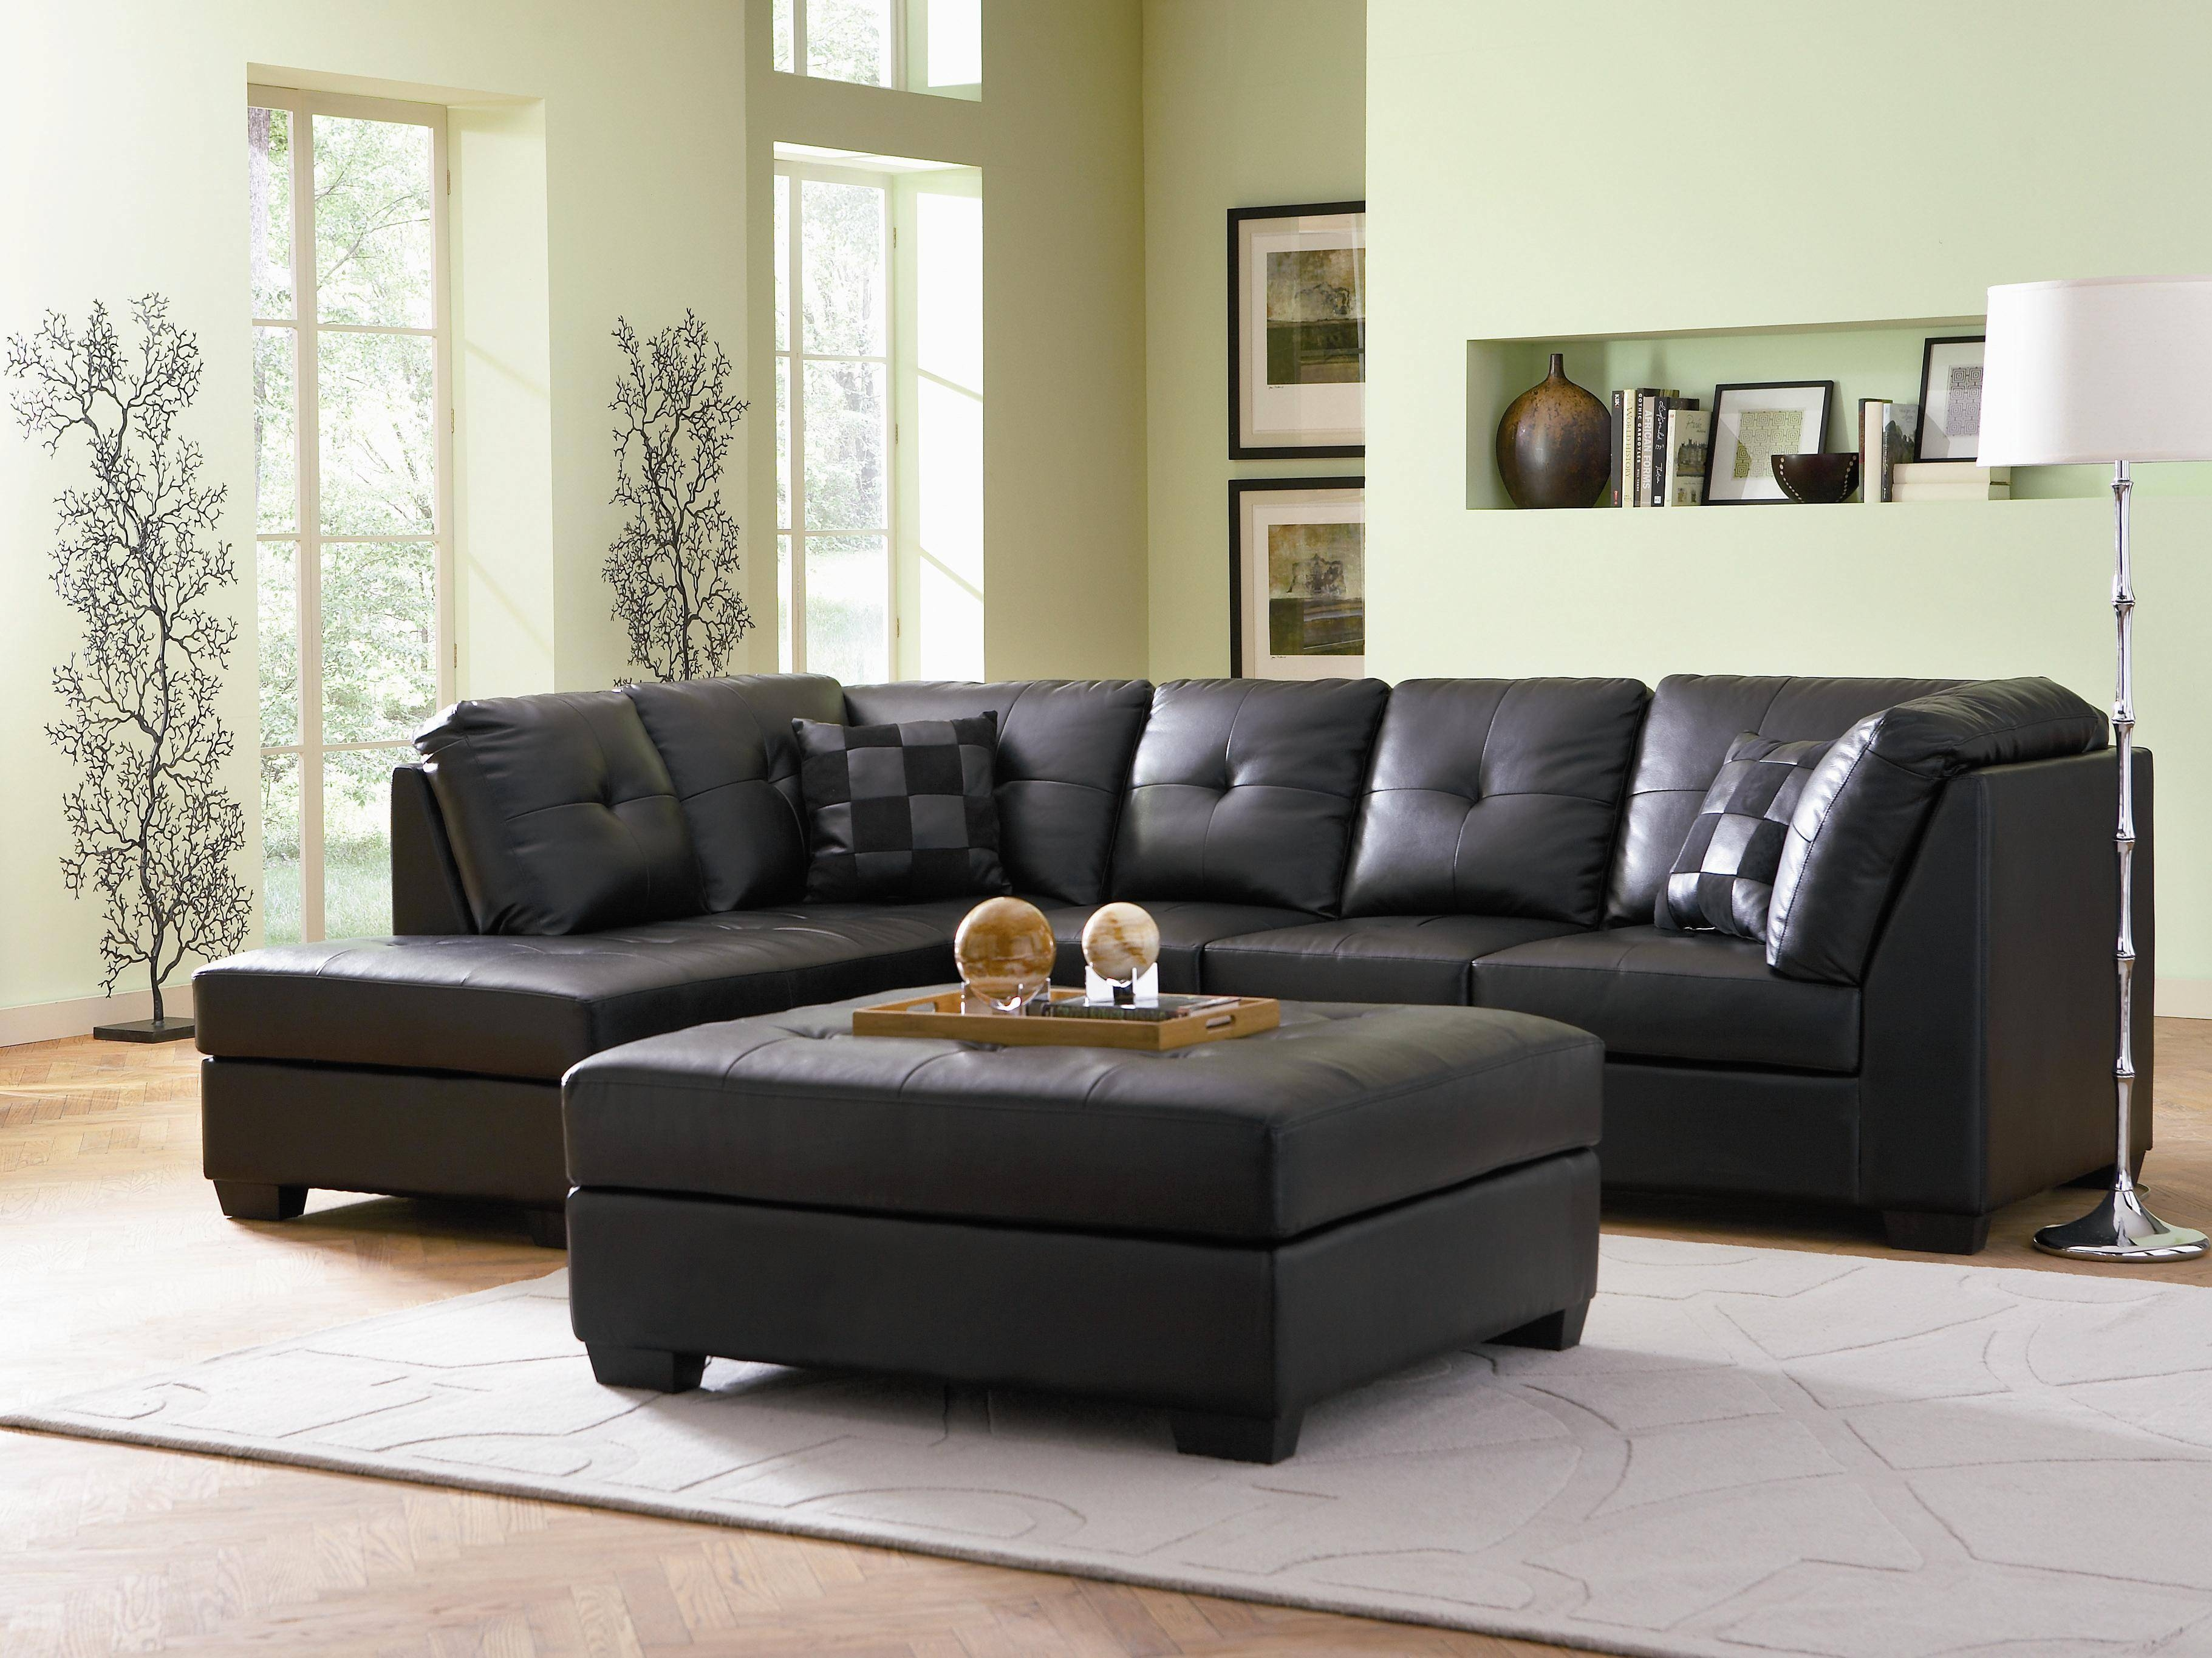 Coaster Darie Leather Sectional Sofa With Left-Side Chaise in Contemporary Black Leather Sectional Sofa Left Side Chaise (Image 8 of 30)